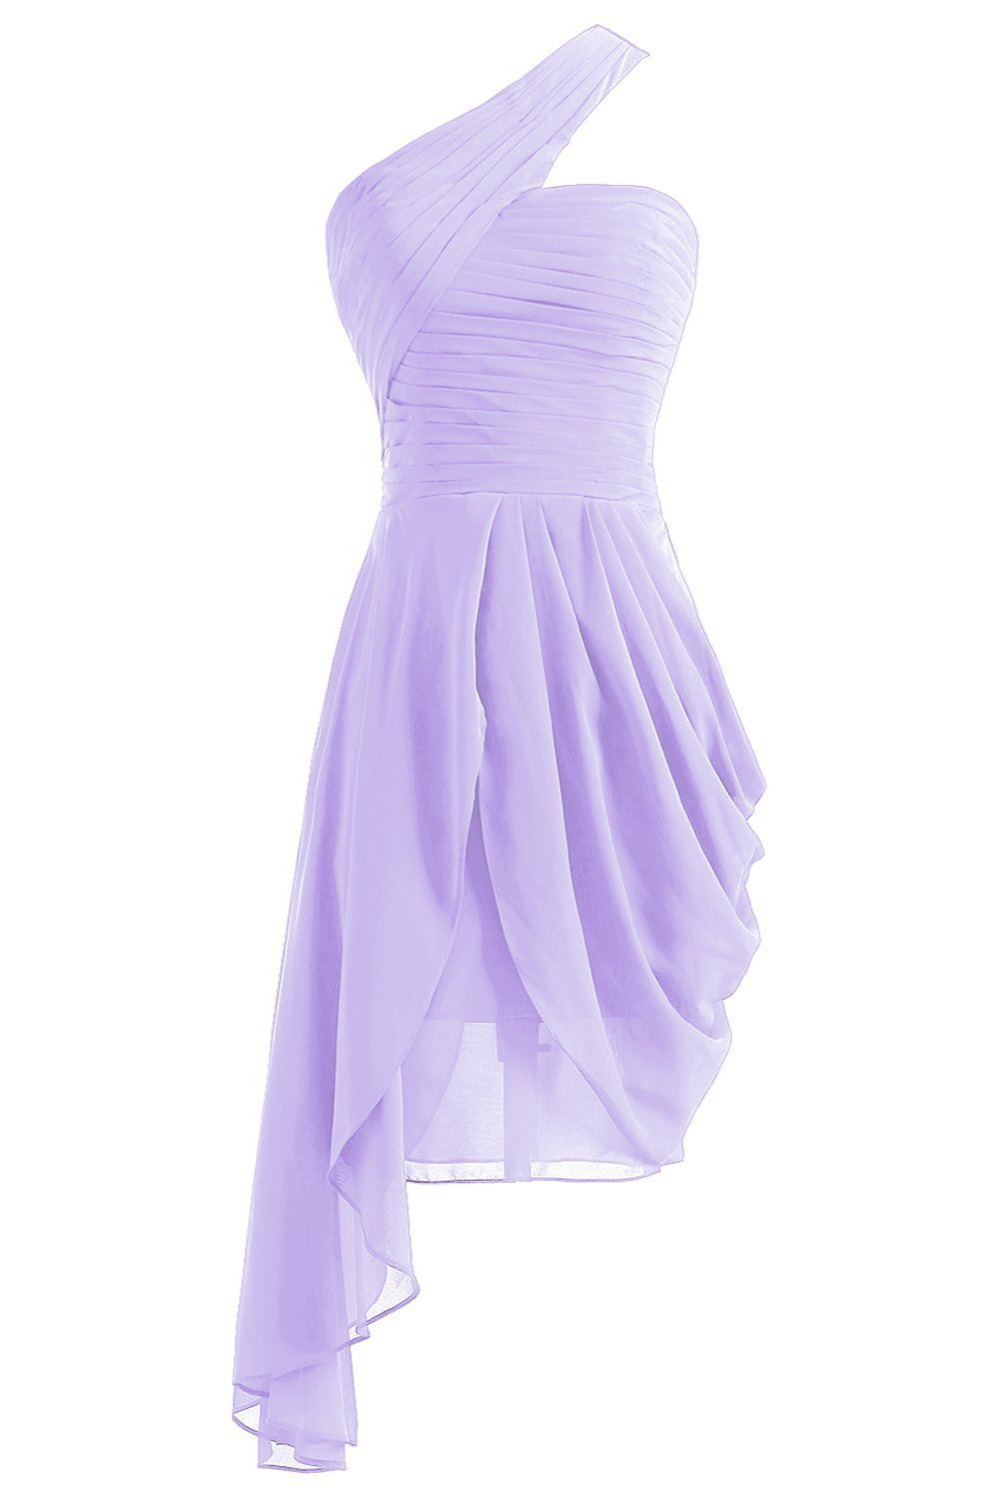 Elegant Sleeveless Knee Length Short Chiffon Bridesmaid Dress